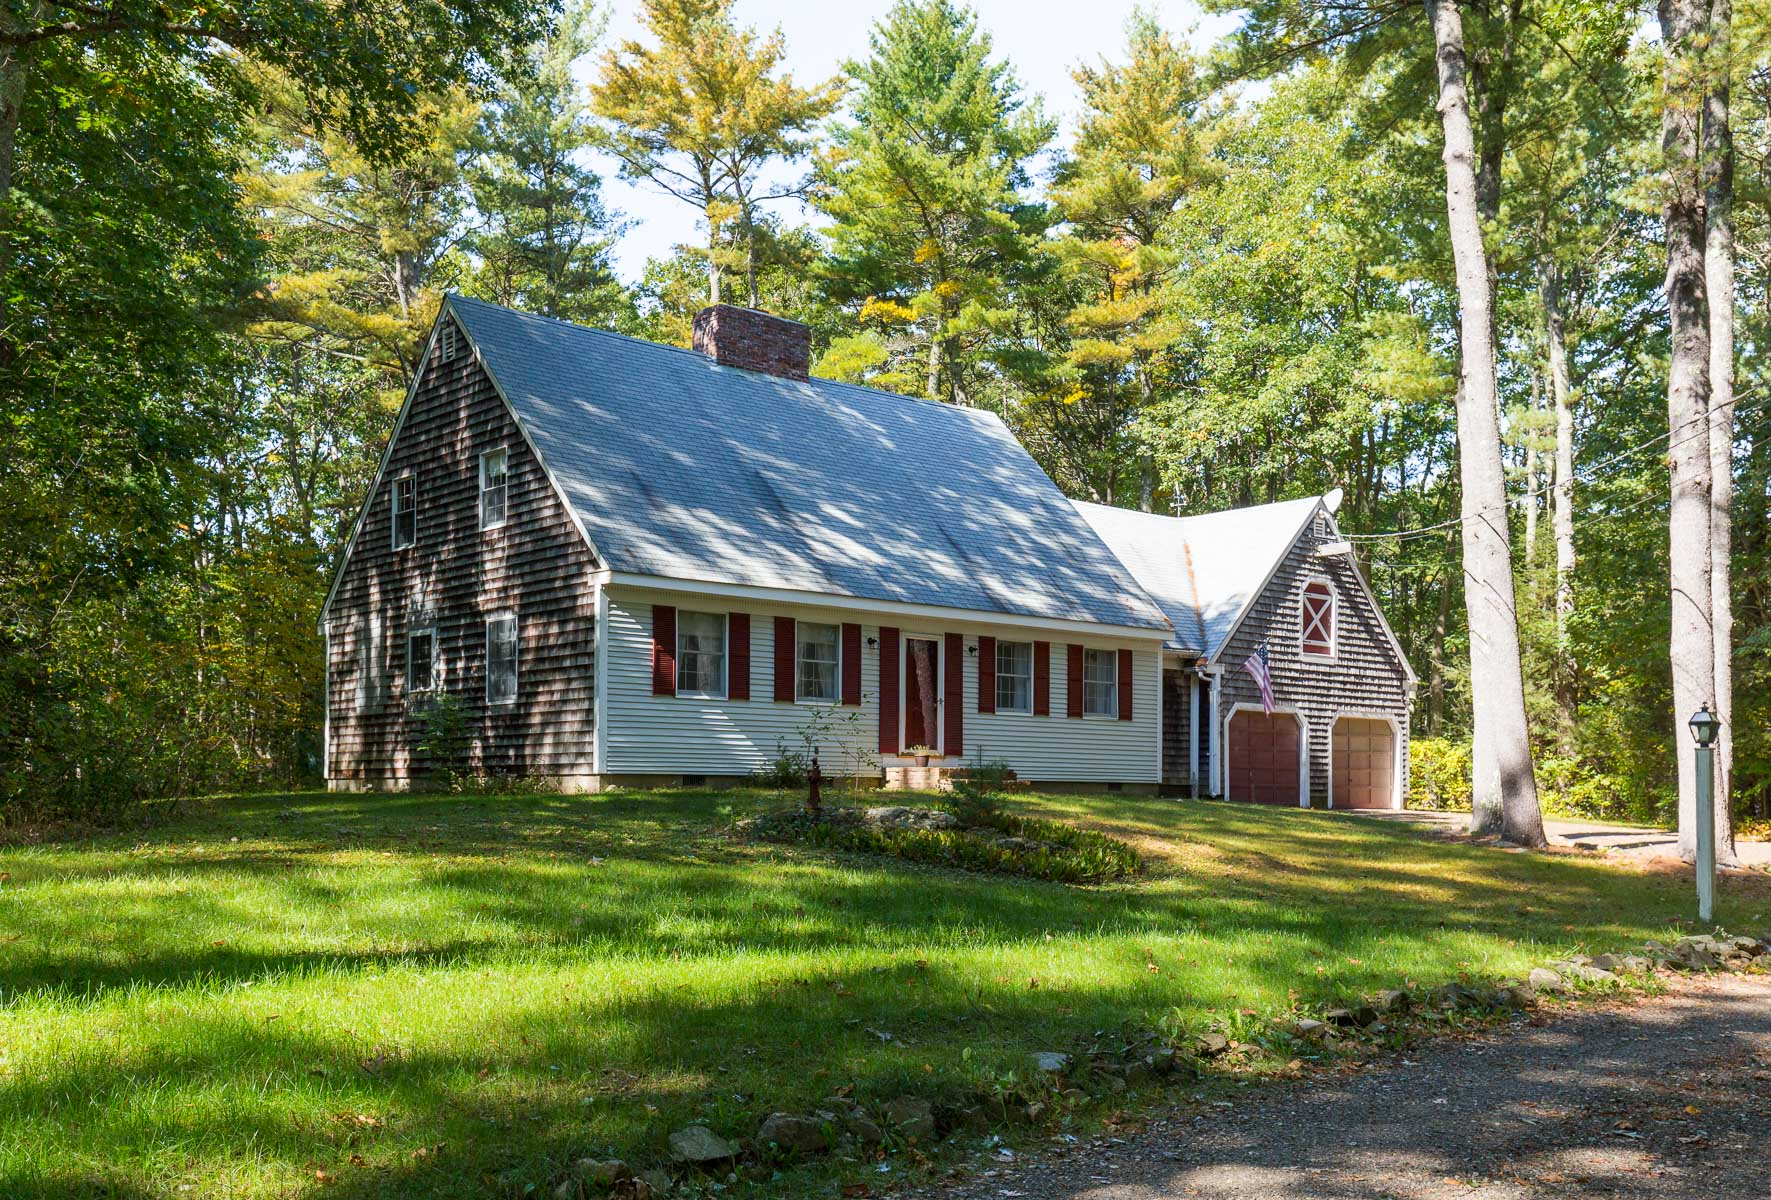 Single Family Home for Sale at Classic Cape 287 Route 103 York, Maine, 03909 United States